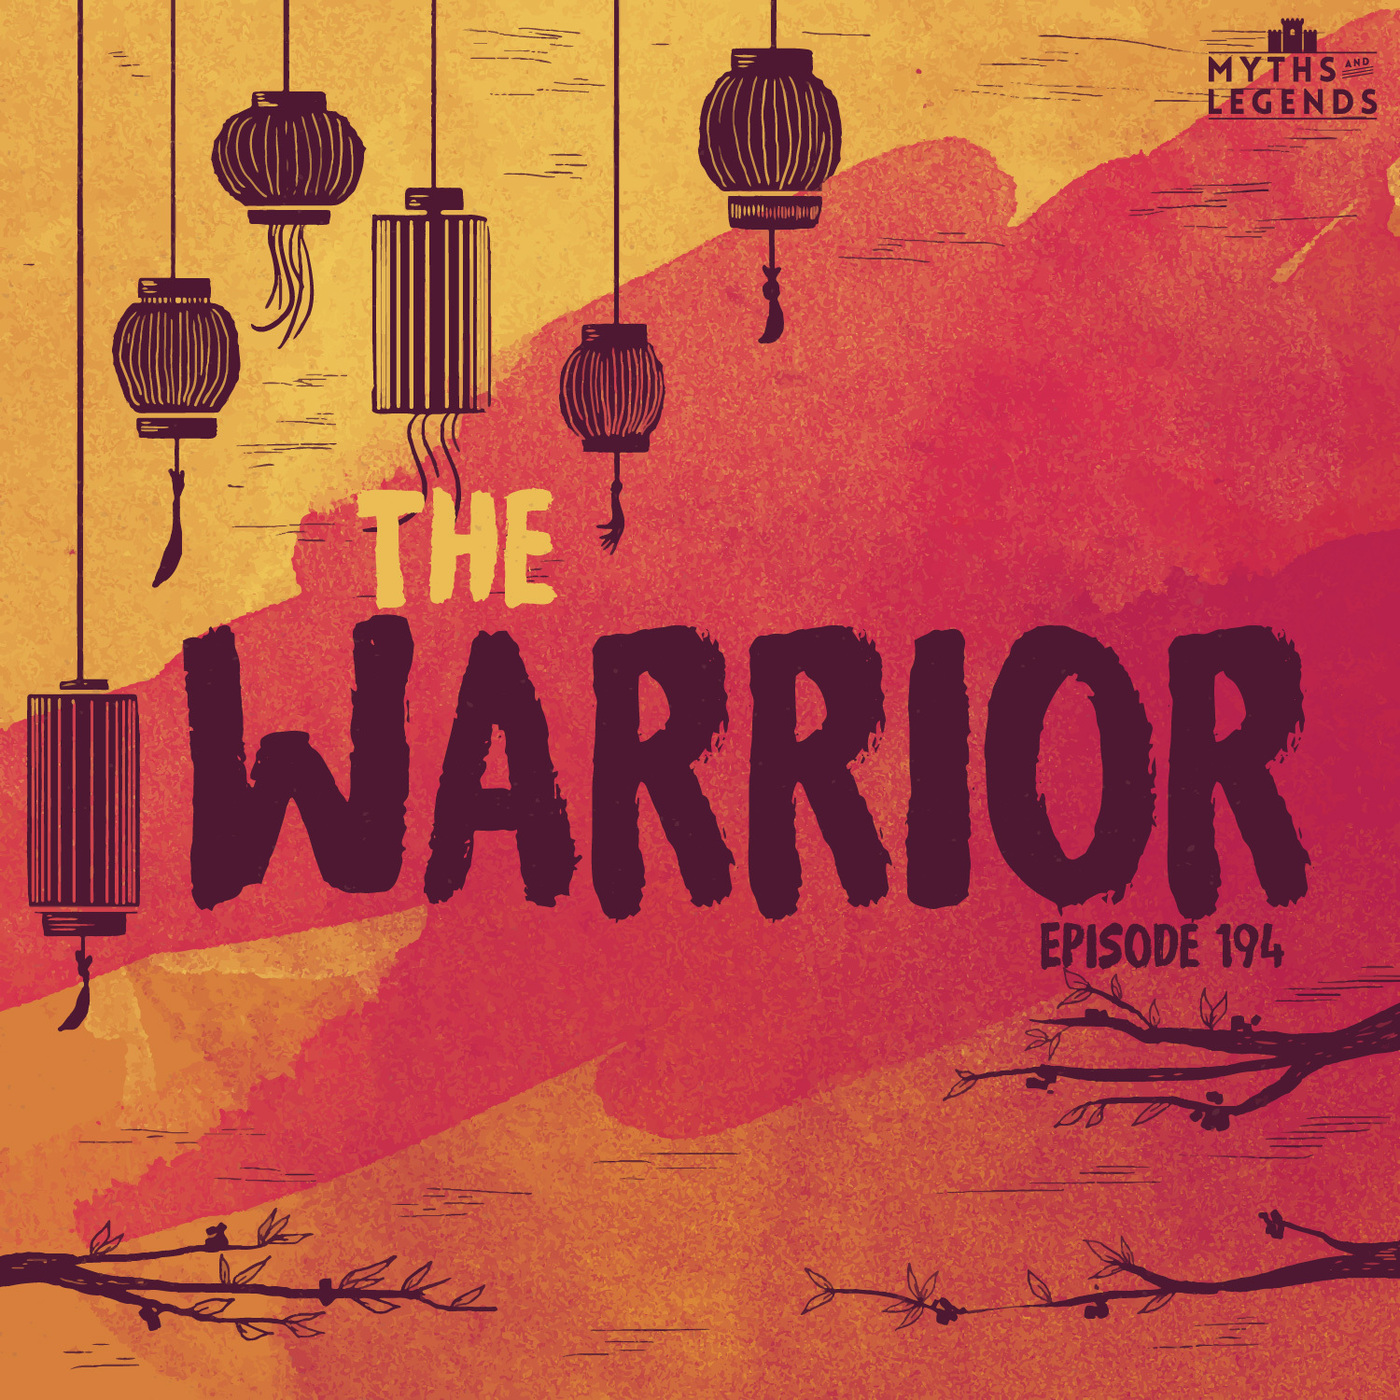 194-Mulan: The Warrior